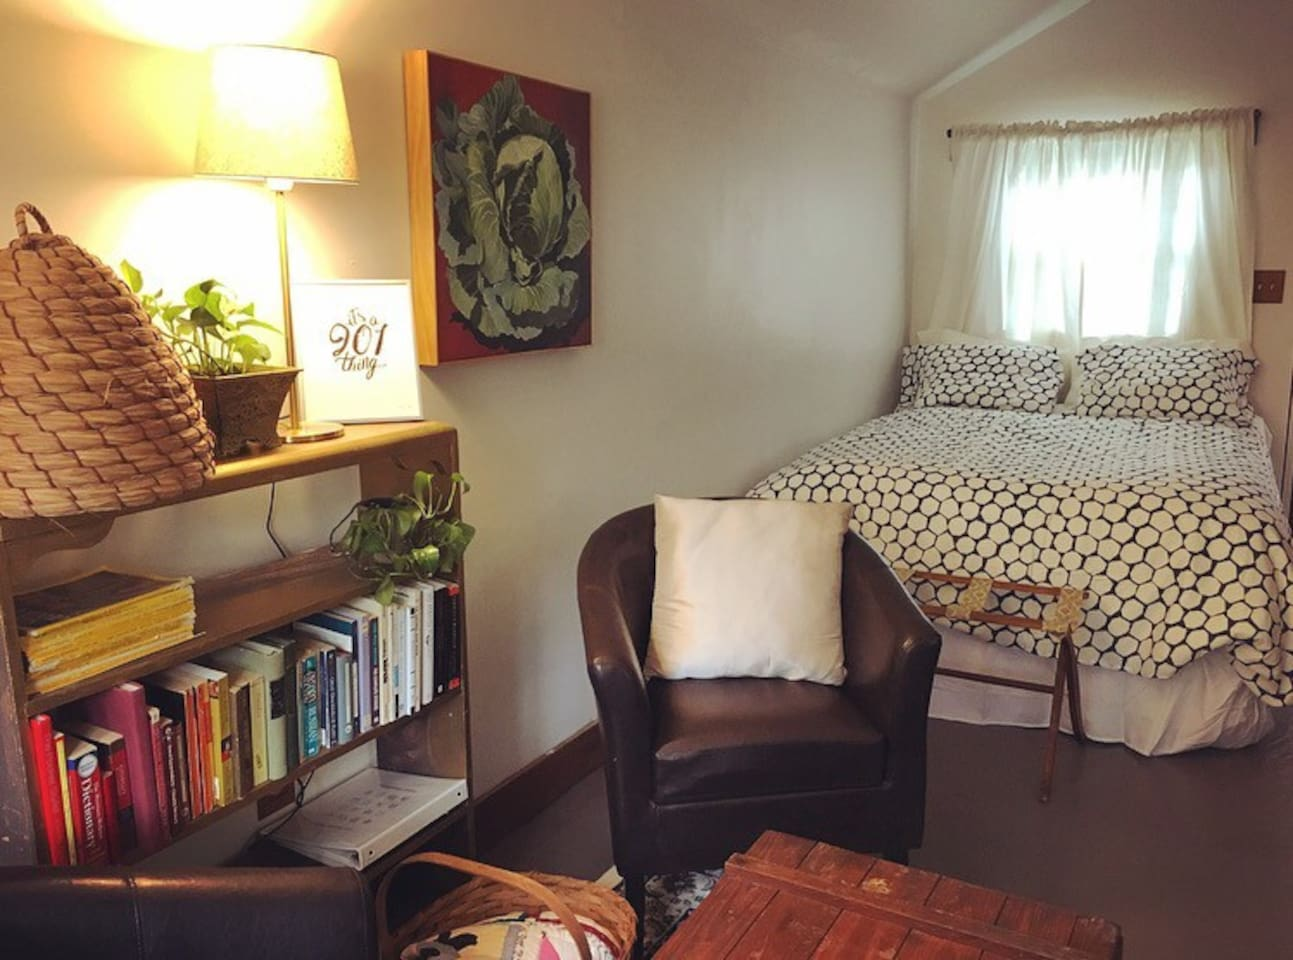 The cottage is a studio apartment with a reading nook and a cozy feather bed.